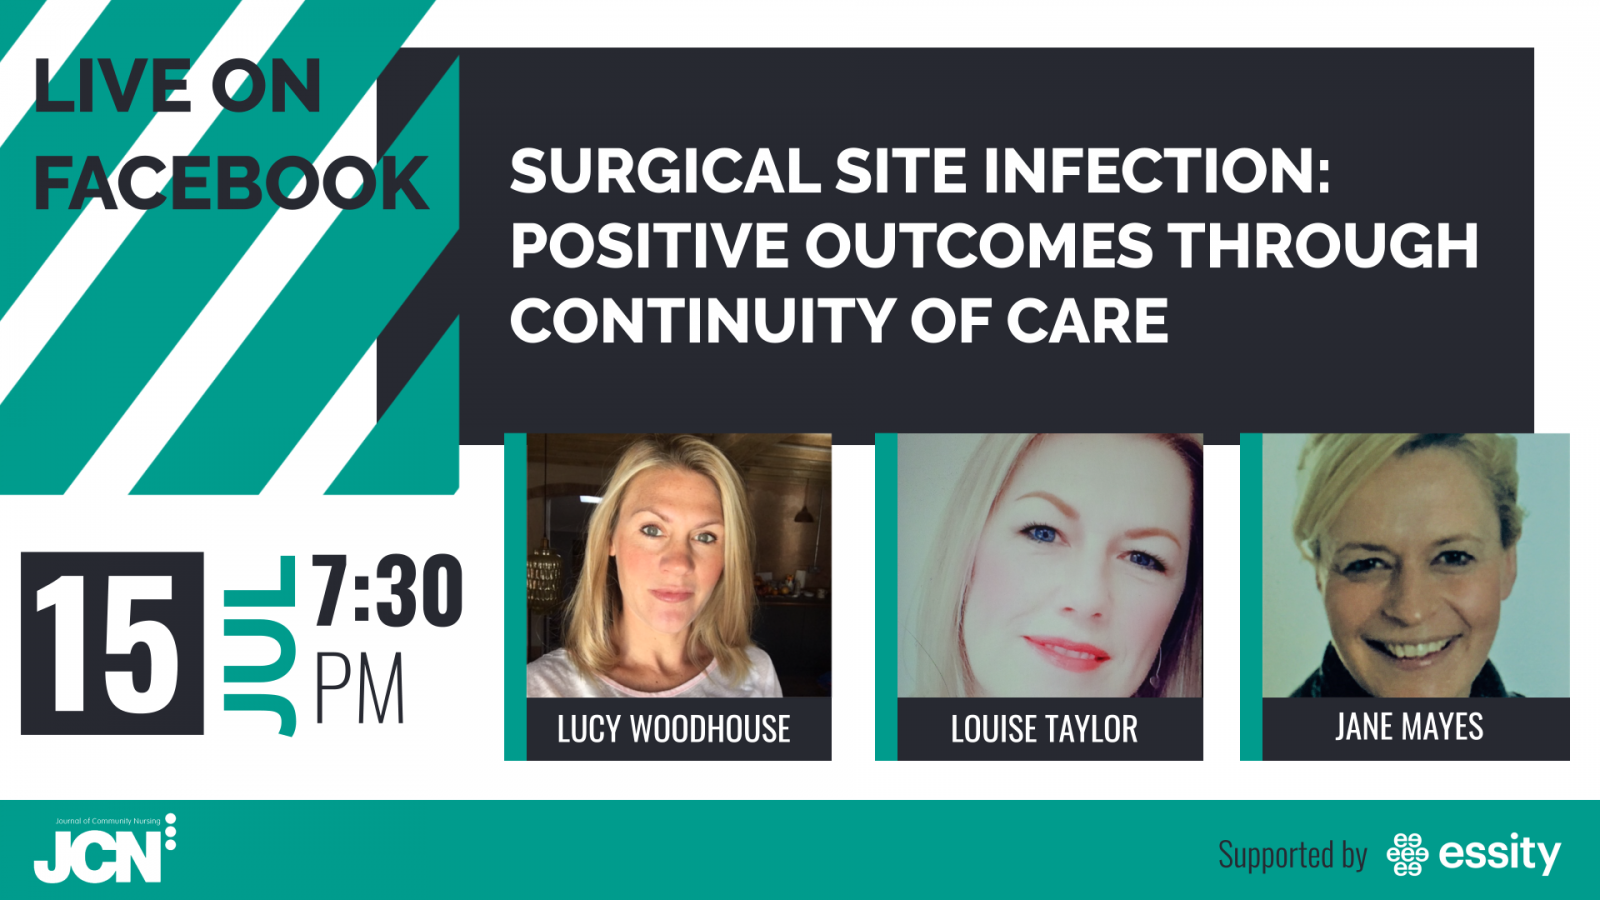 Facebook Live: SSI - positive outcomes through continuity of care